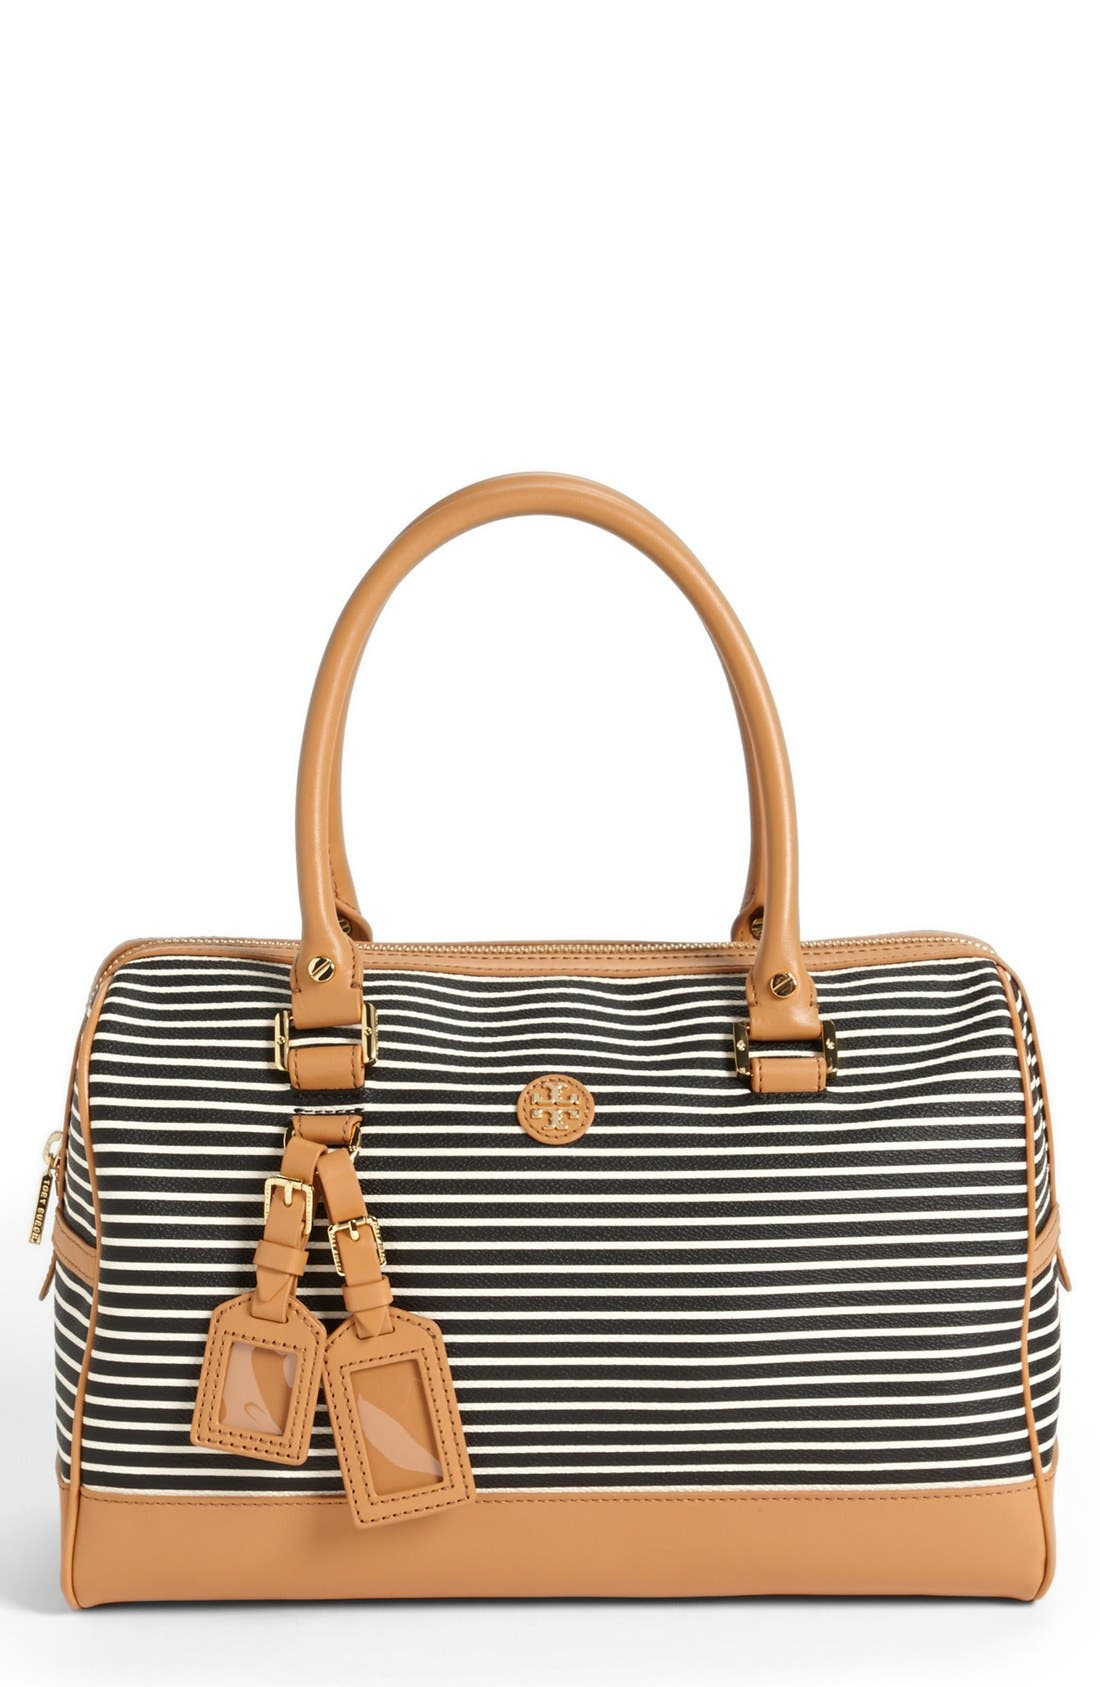 Main Image - Tory Burch 'Viva' Satchel